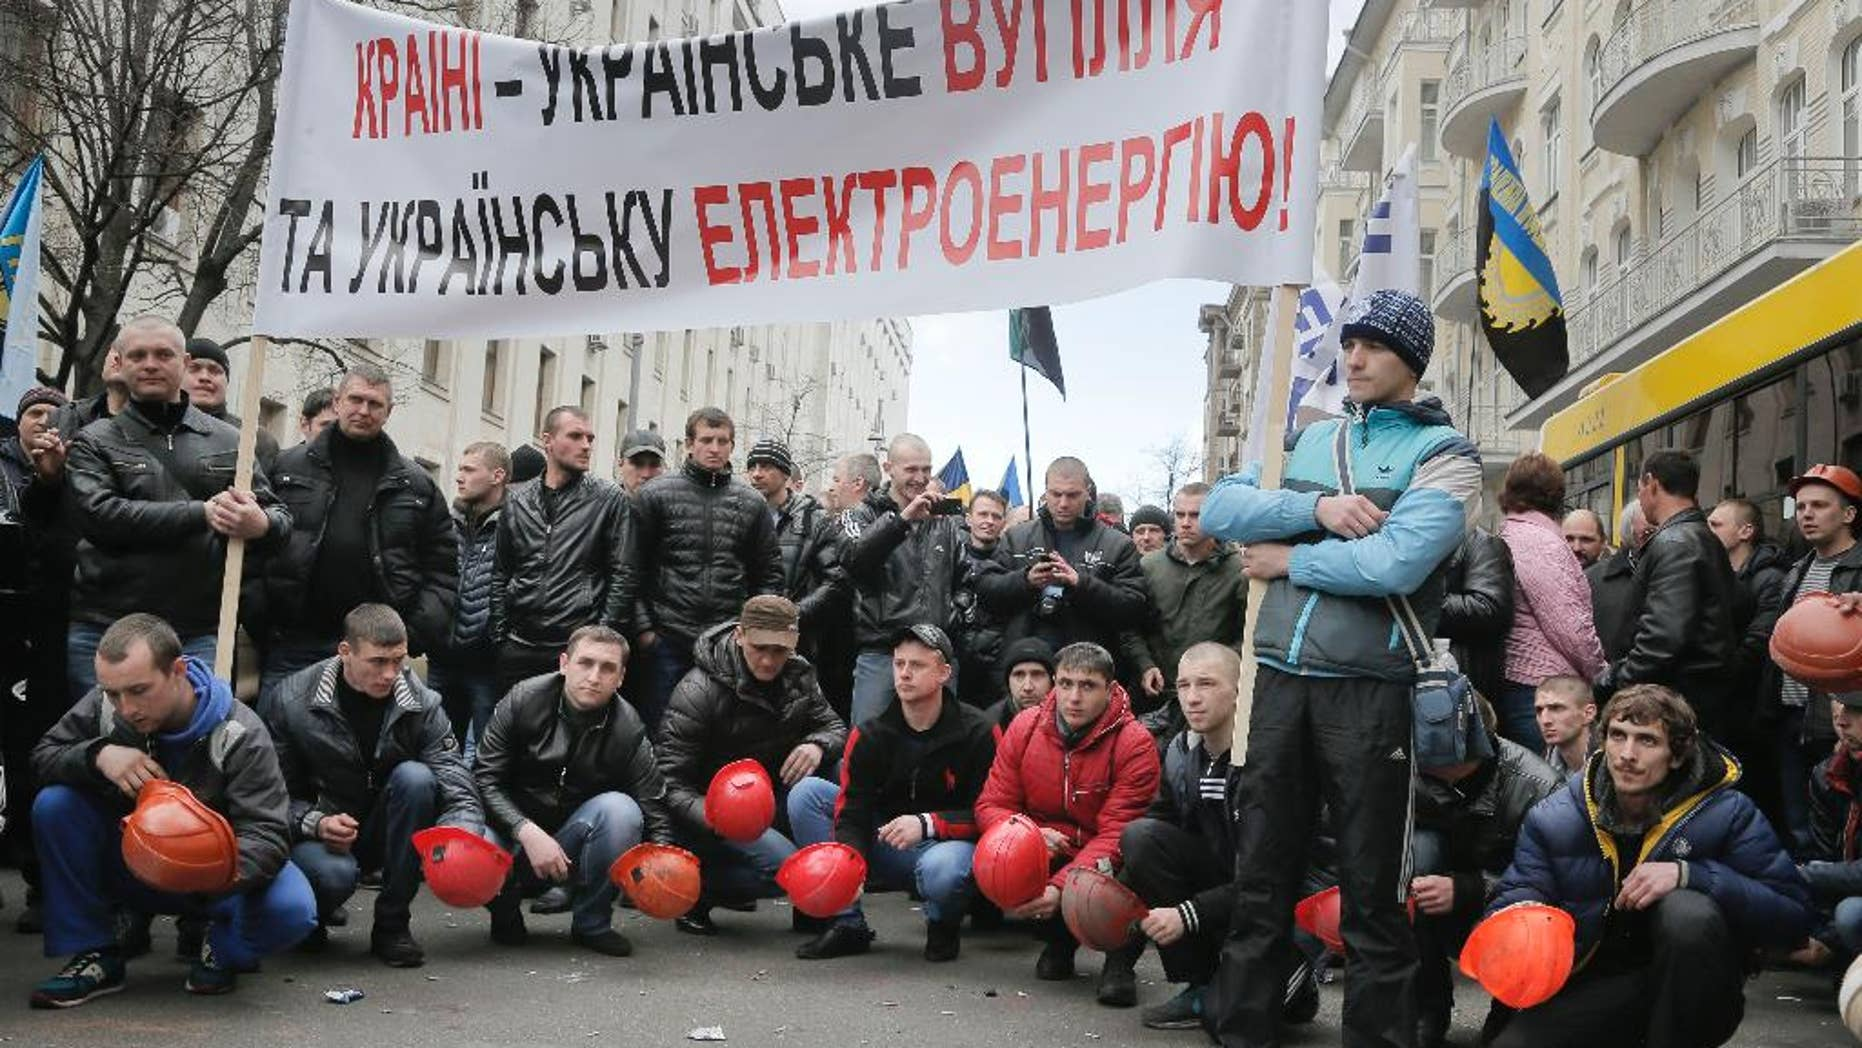 Ukrainian miners bang their helmets on the pavement during a protest outside the presidential administration in Kiev, Ukraine, Wednesday, April 22. 2015. About 1,000 miners gathered near government buildings in a call for the resignation of the energy minister amid anger at the authorities decision to buy coal from abroad. The banner reads: 'Ukrainian Coal and Ukrainian Electricity for the Country.' (AP Photo/Efrem Lukatsky)